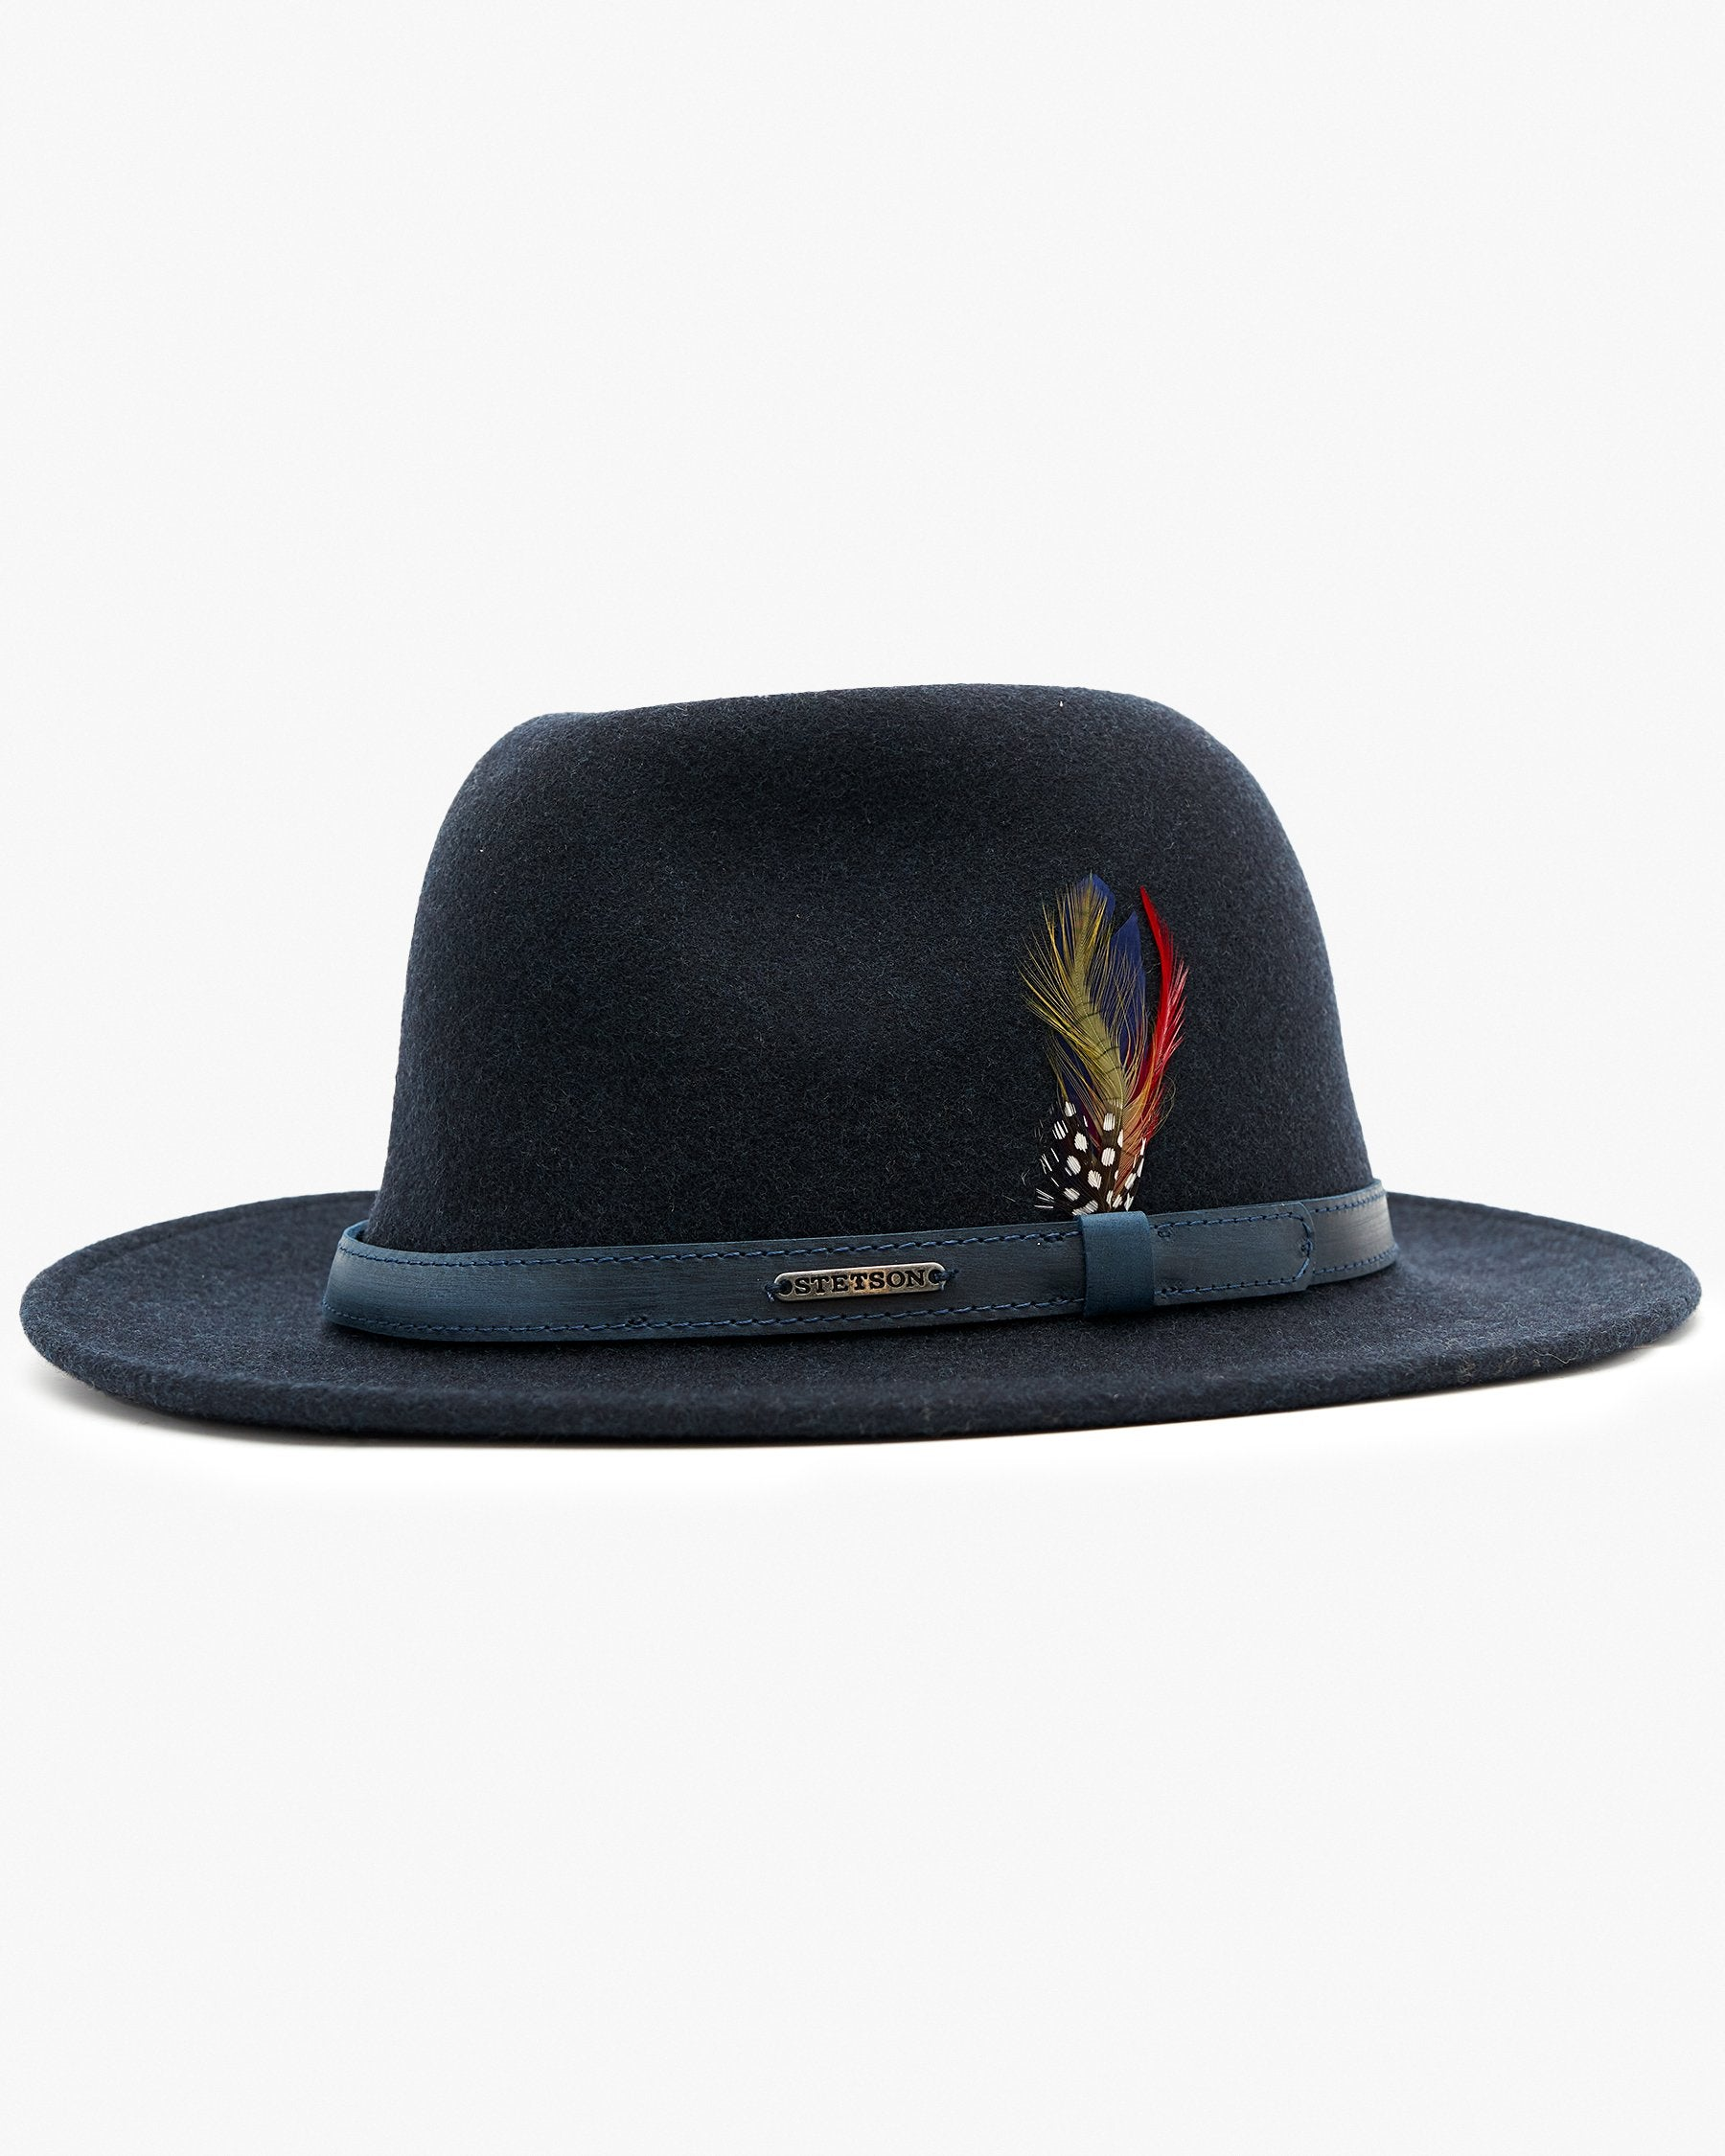 Stetson Traveller Woolfelt Mix Hat - Navy Mix 57/M 2598123-20M 4043898683791 Stetson Hats